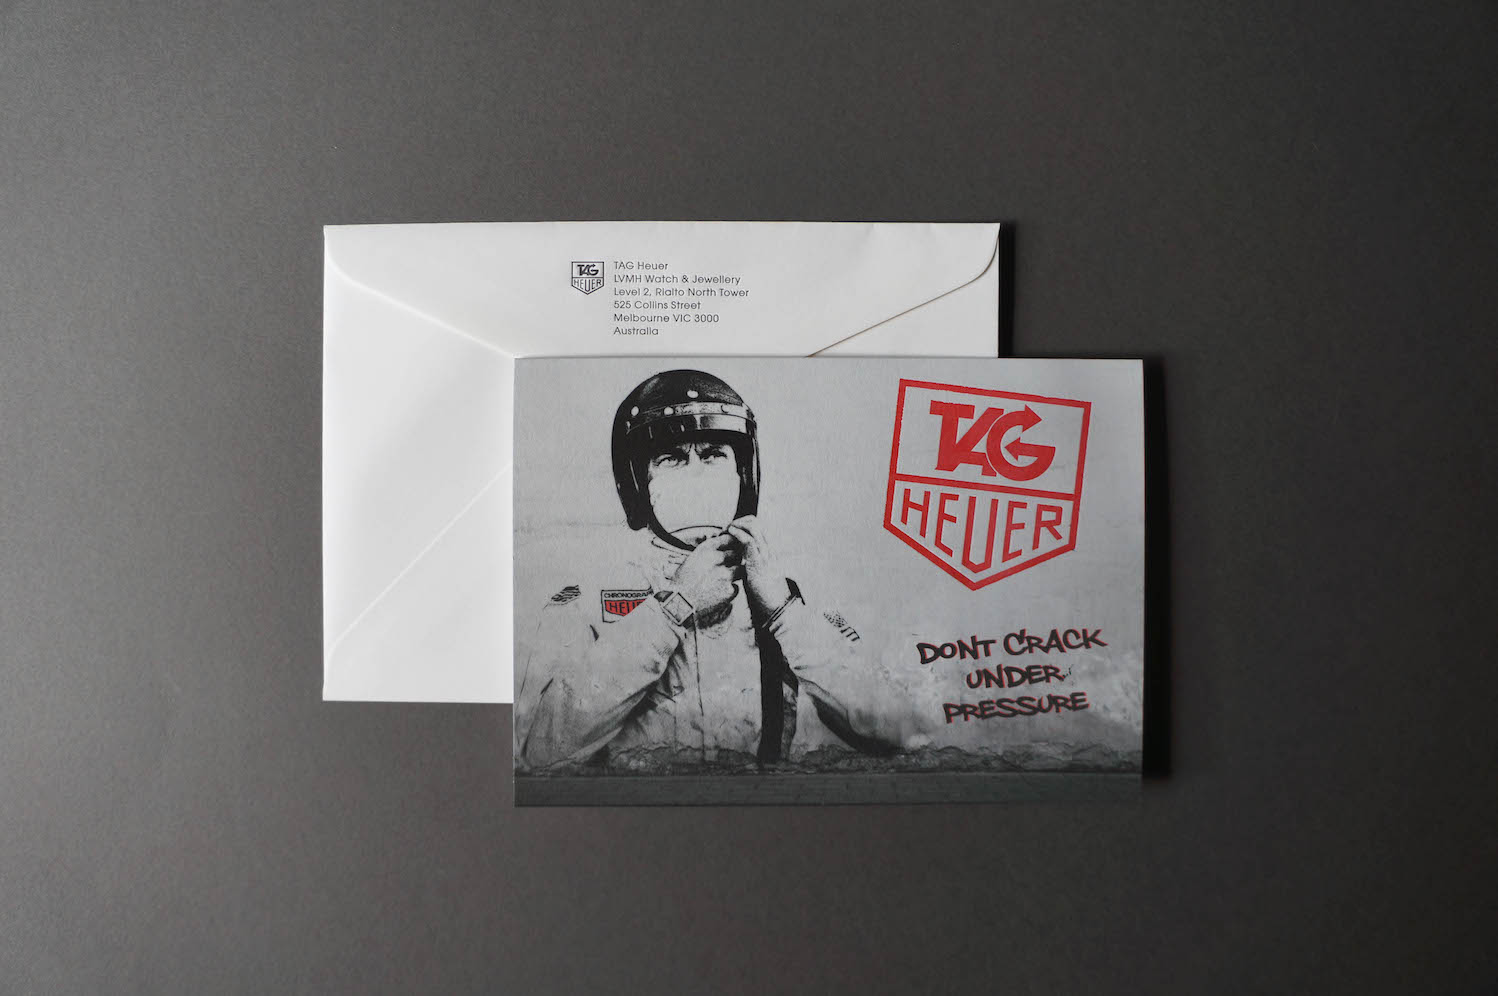 letterpress-invitation-tag-heuer-halftone-christmas-card